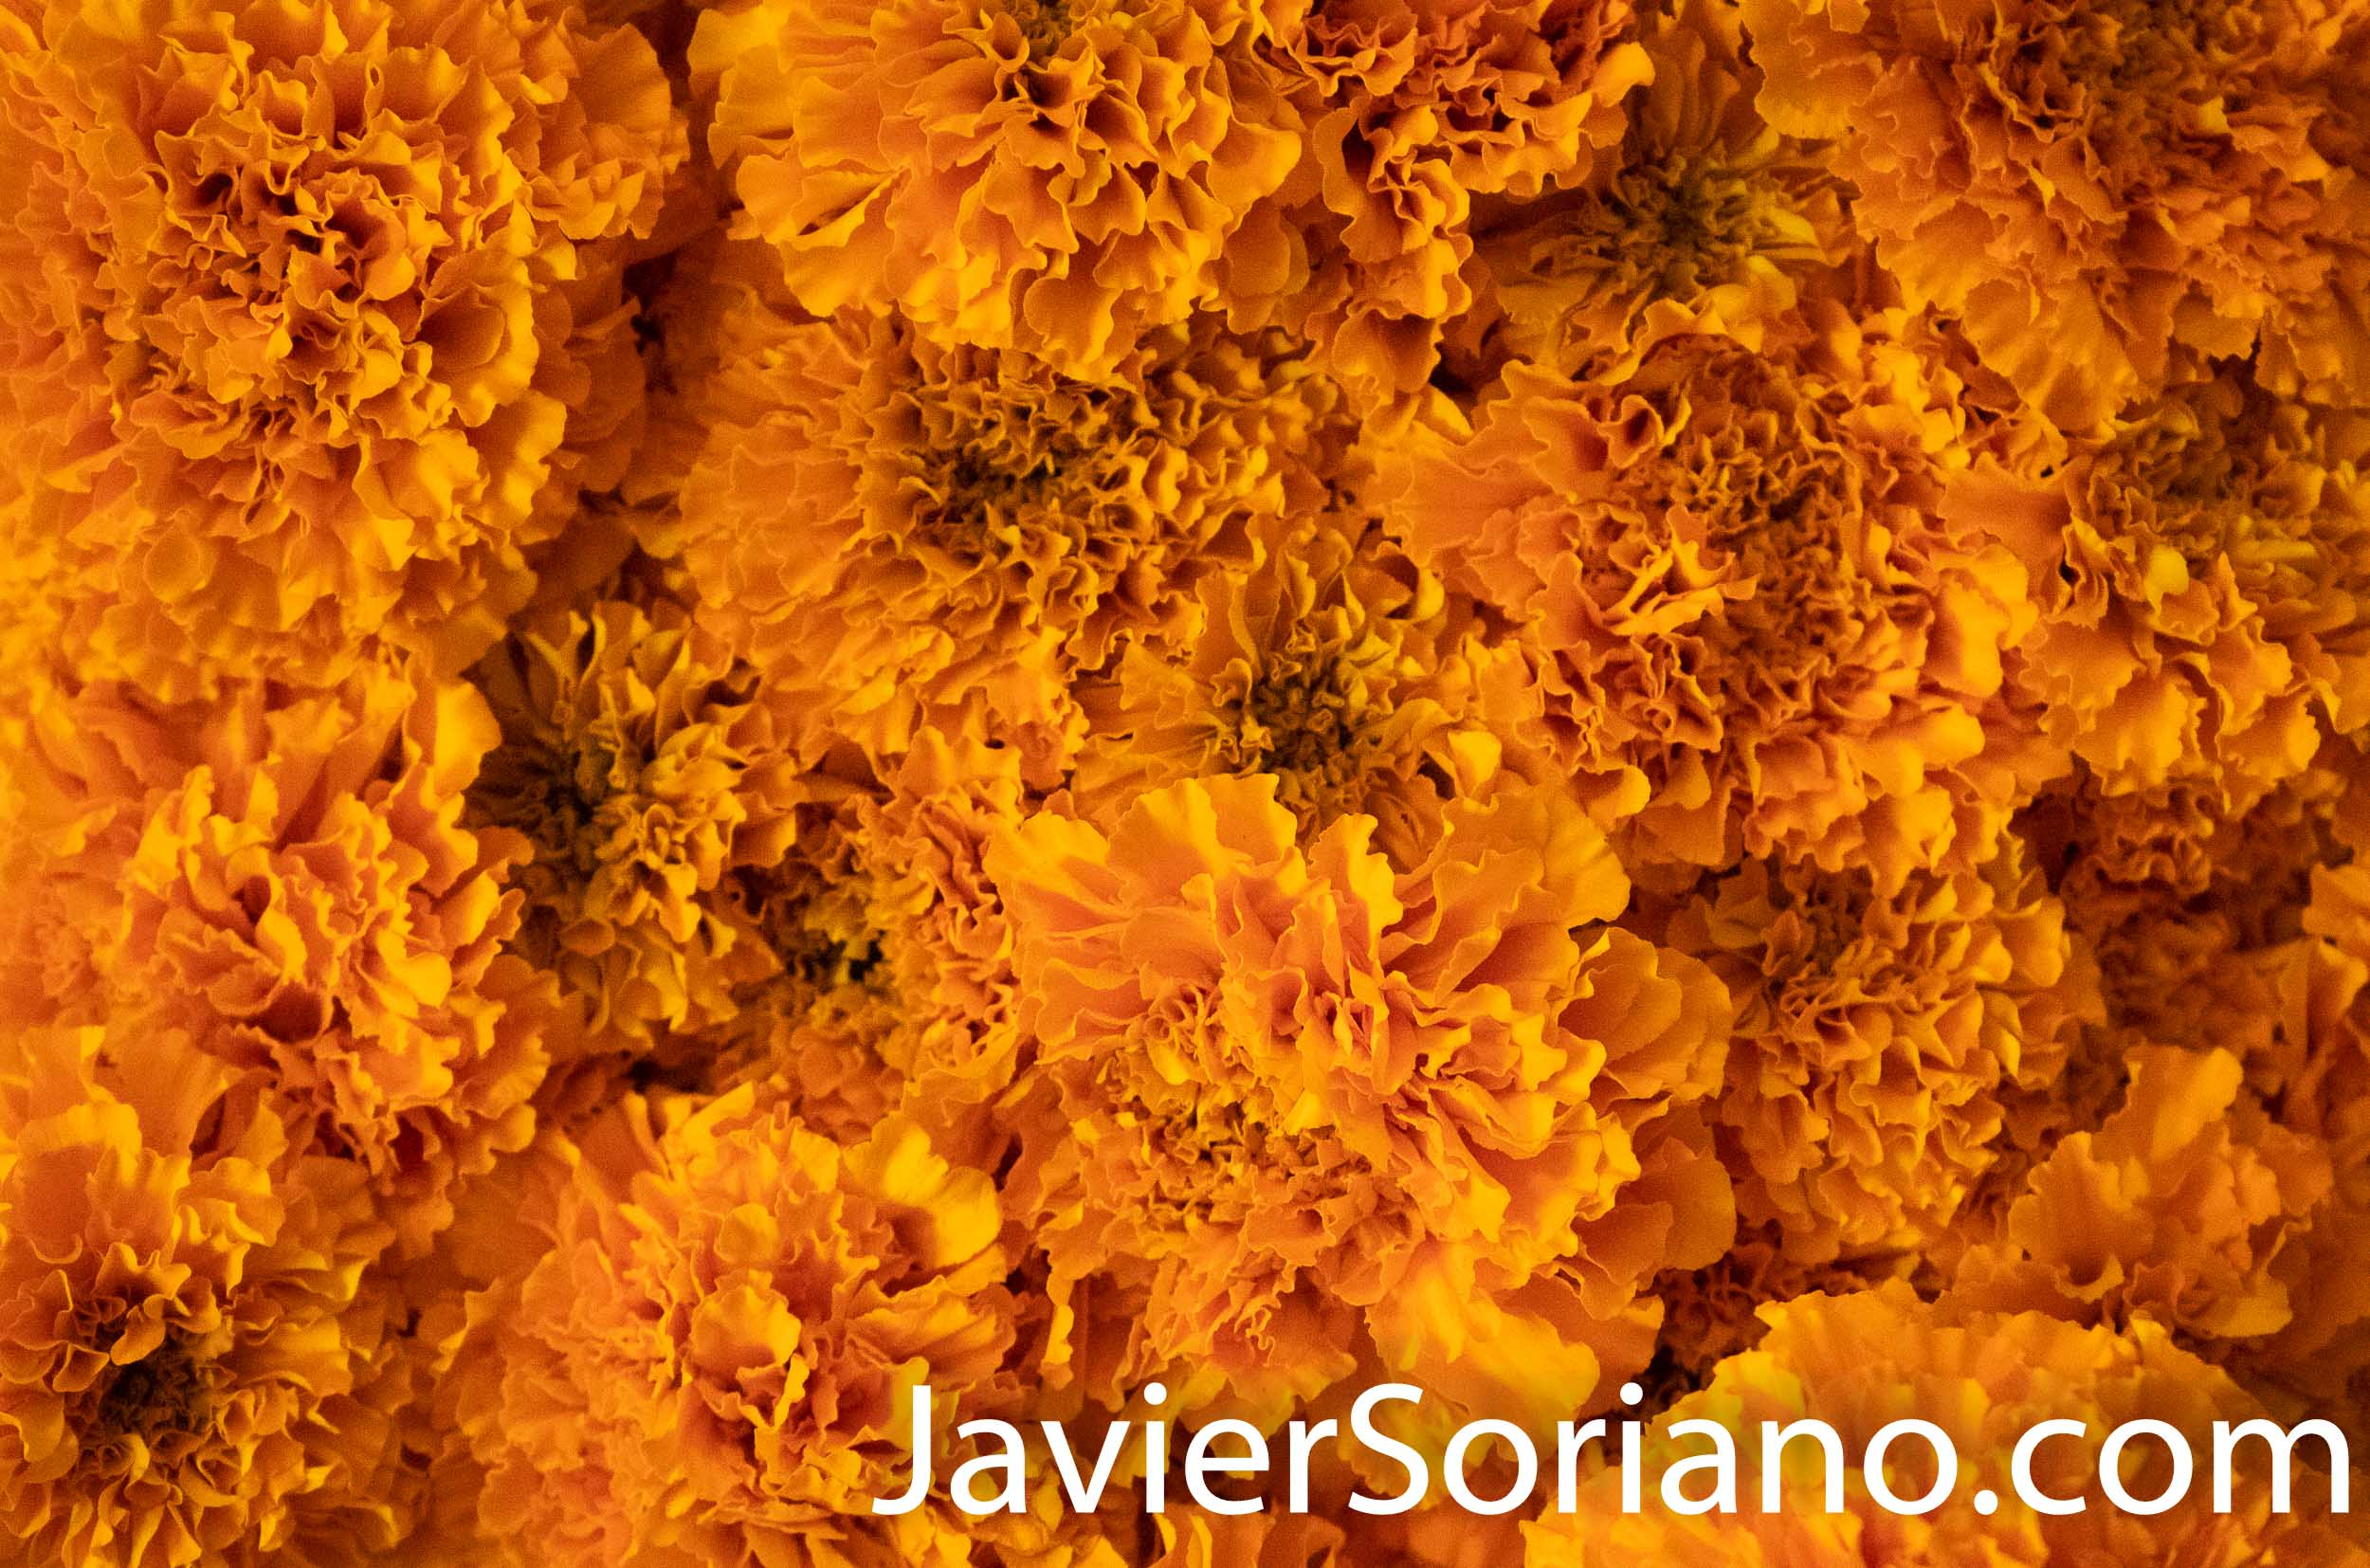 Flor de Cempazúchitl (in English Mexican marigold or Aztec marigold).